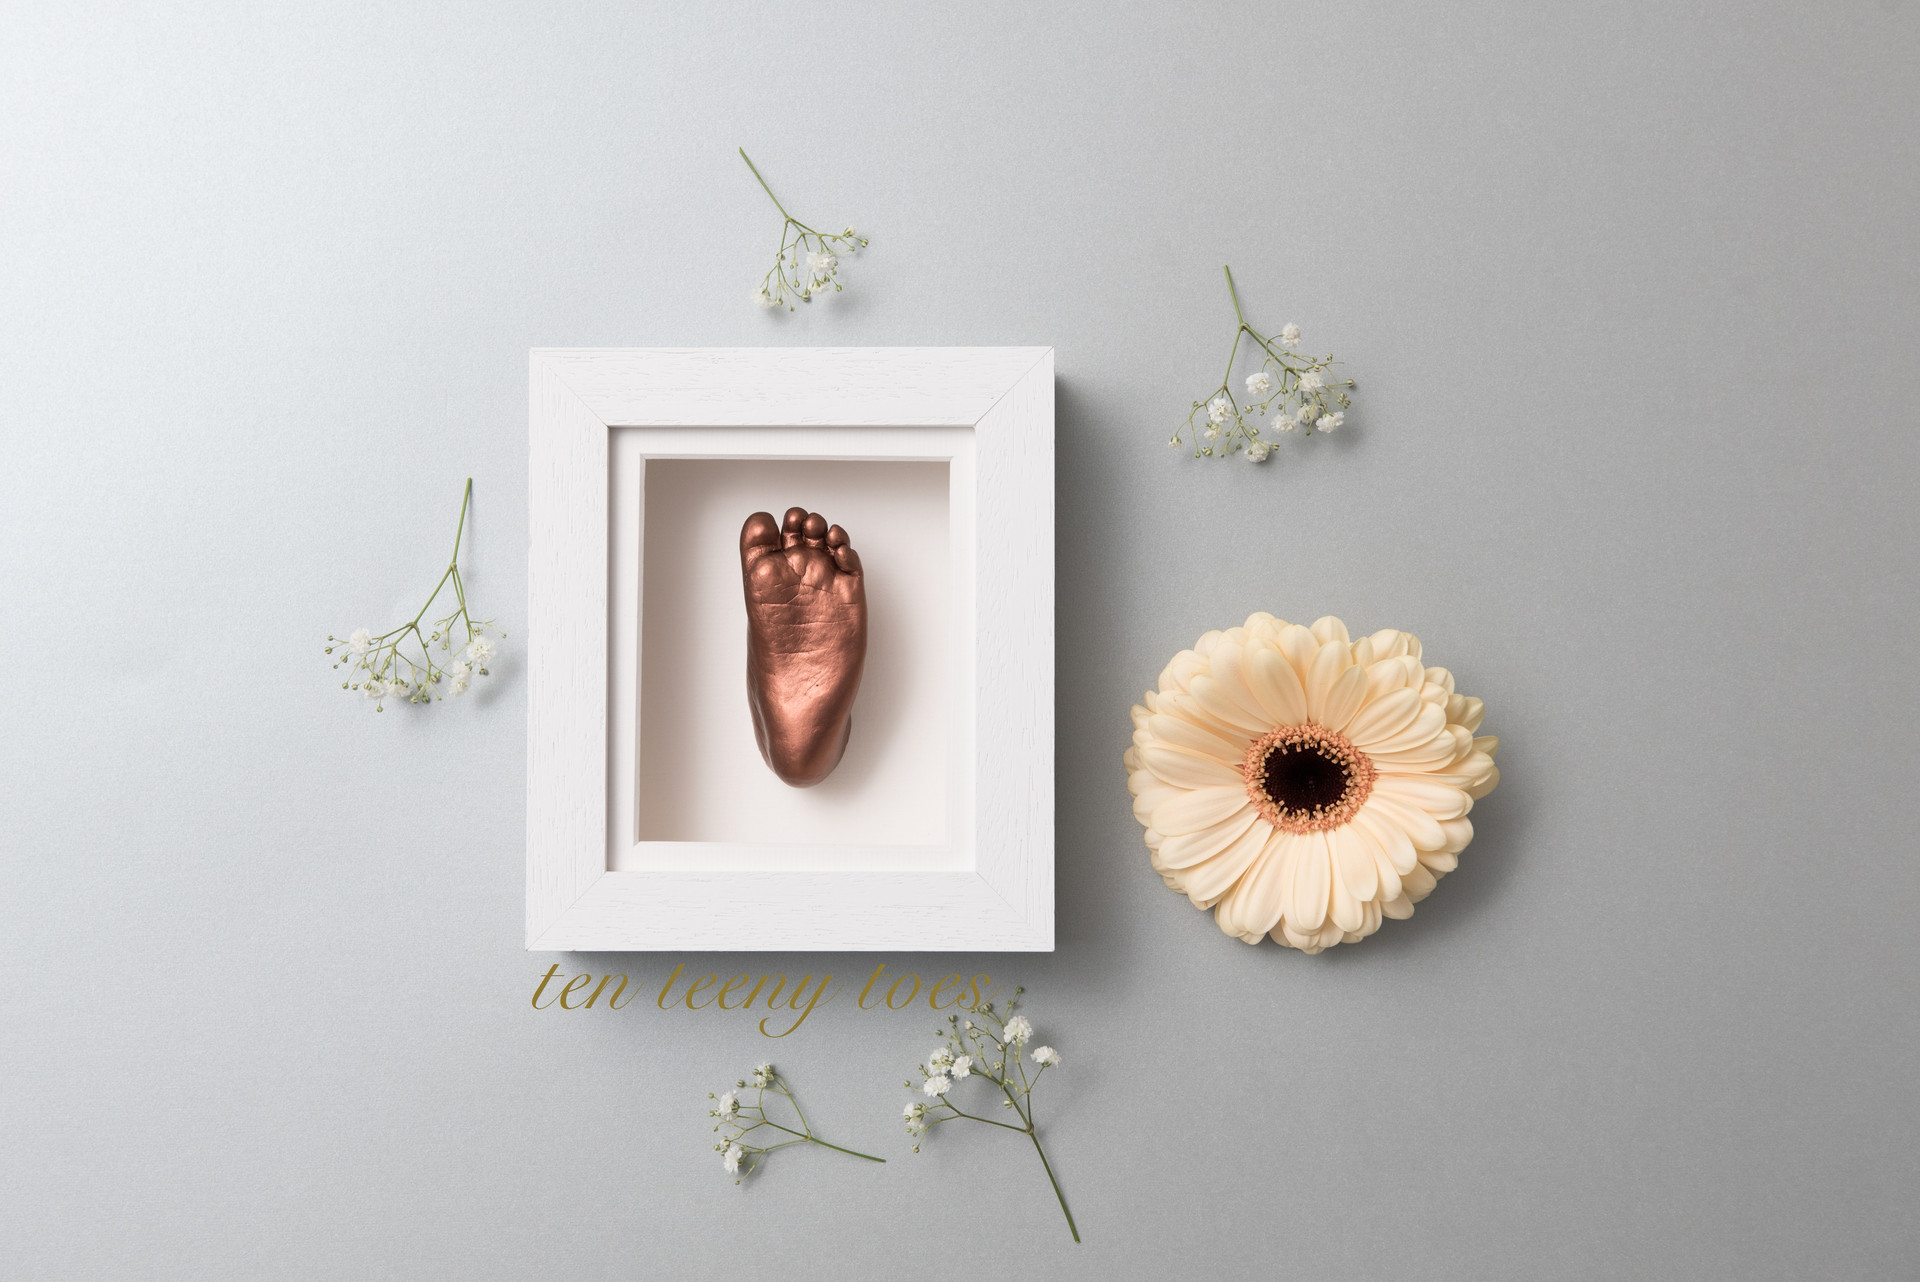 One bronze foot cast in a contemporary white frame.